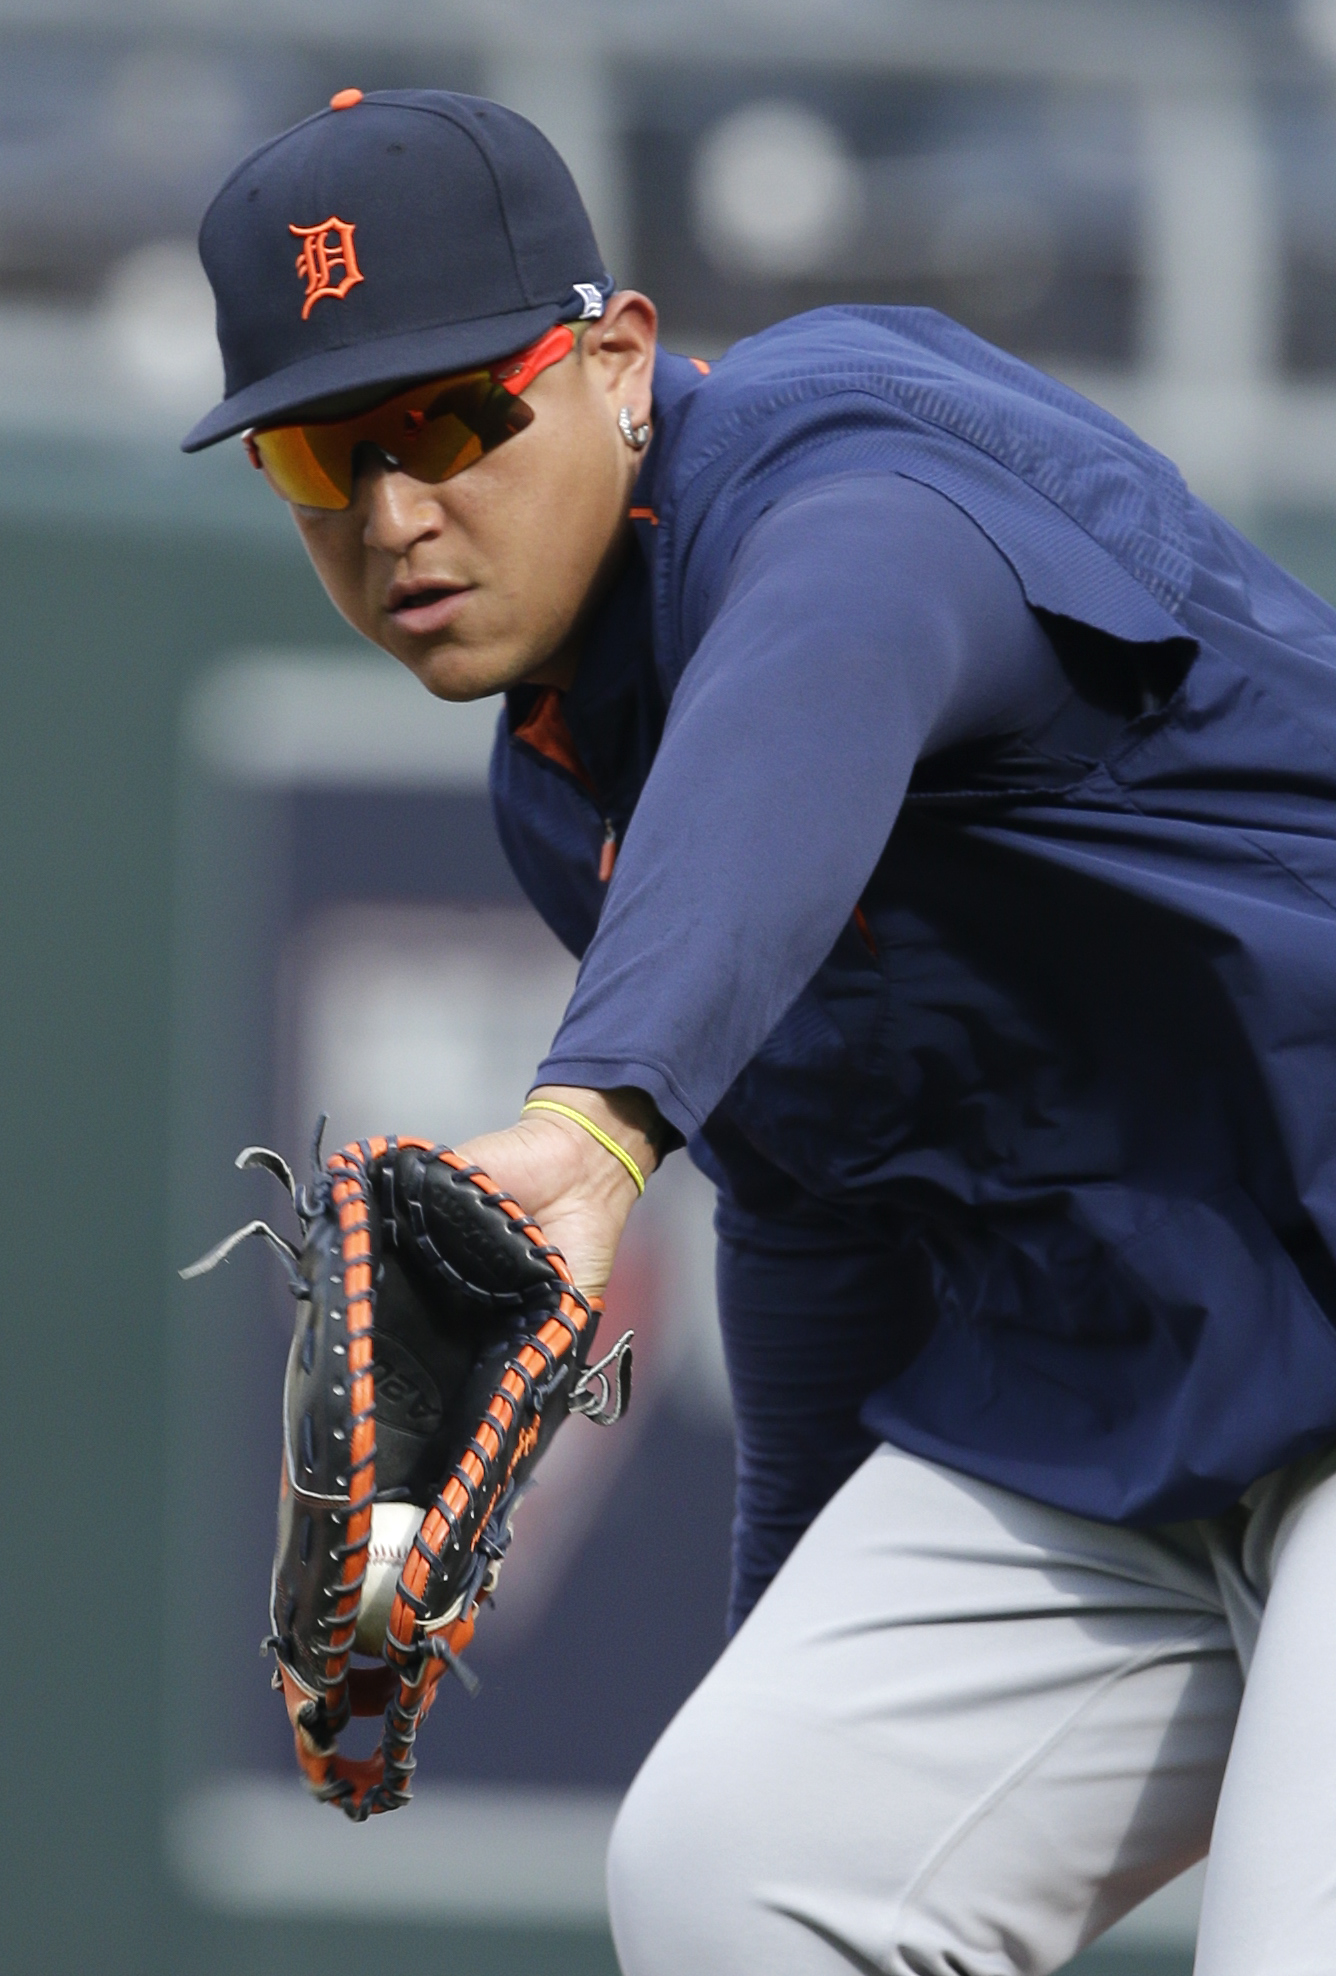 Detroit Tigers first baseman Miguel Cabrera fields a ball during batting practice before a baseball game against the Kansas City Royals at Kauffman Stadium in Kansas City, Mo., Monday, Aug. 10, 2015. (AP Photo/Orlin Wagner)